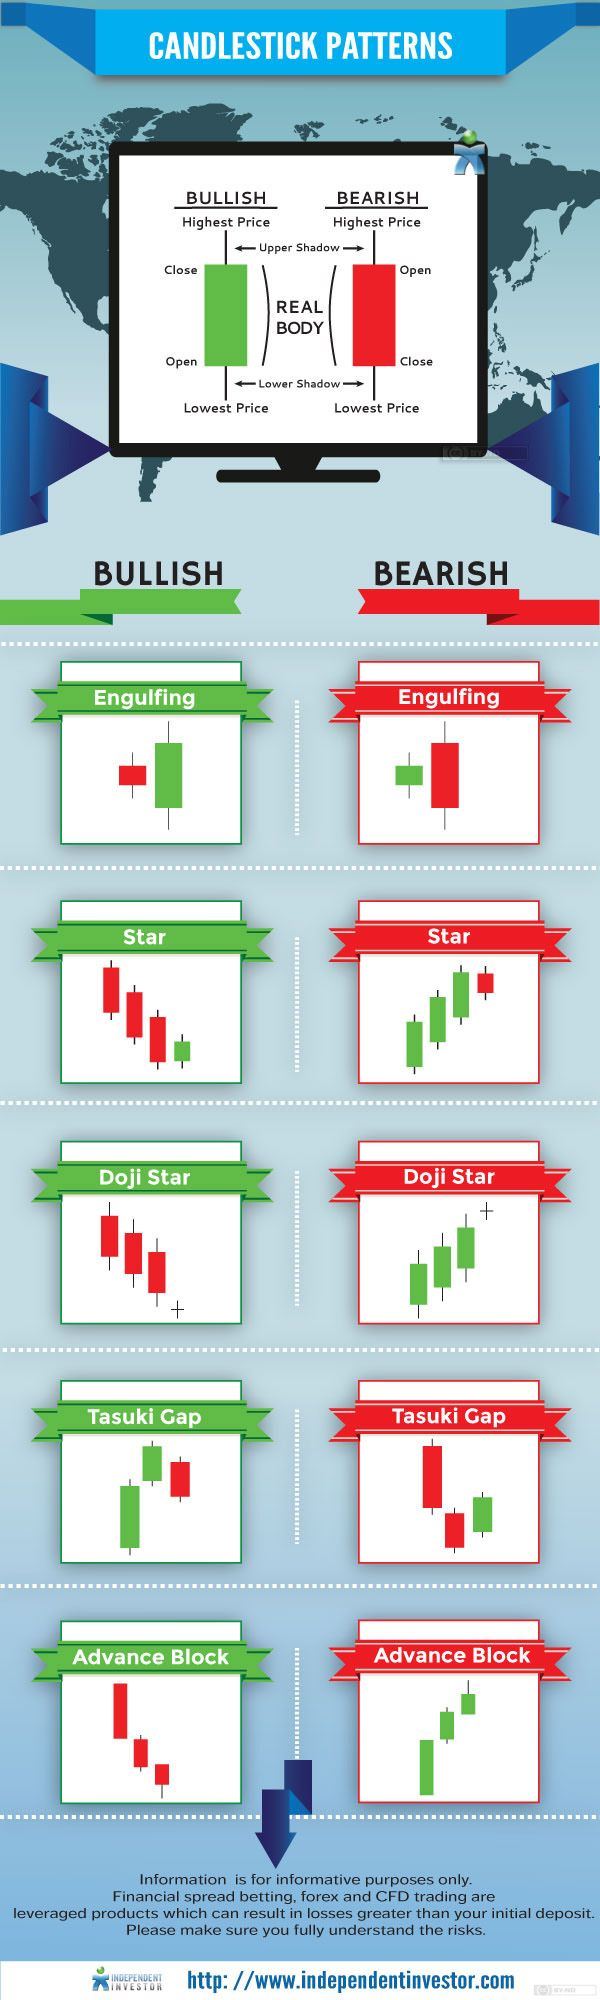 Candlesticks for forex trading